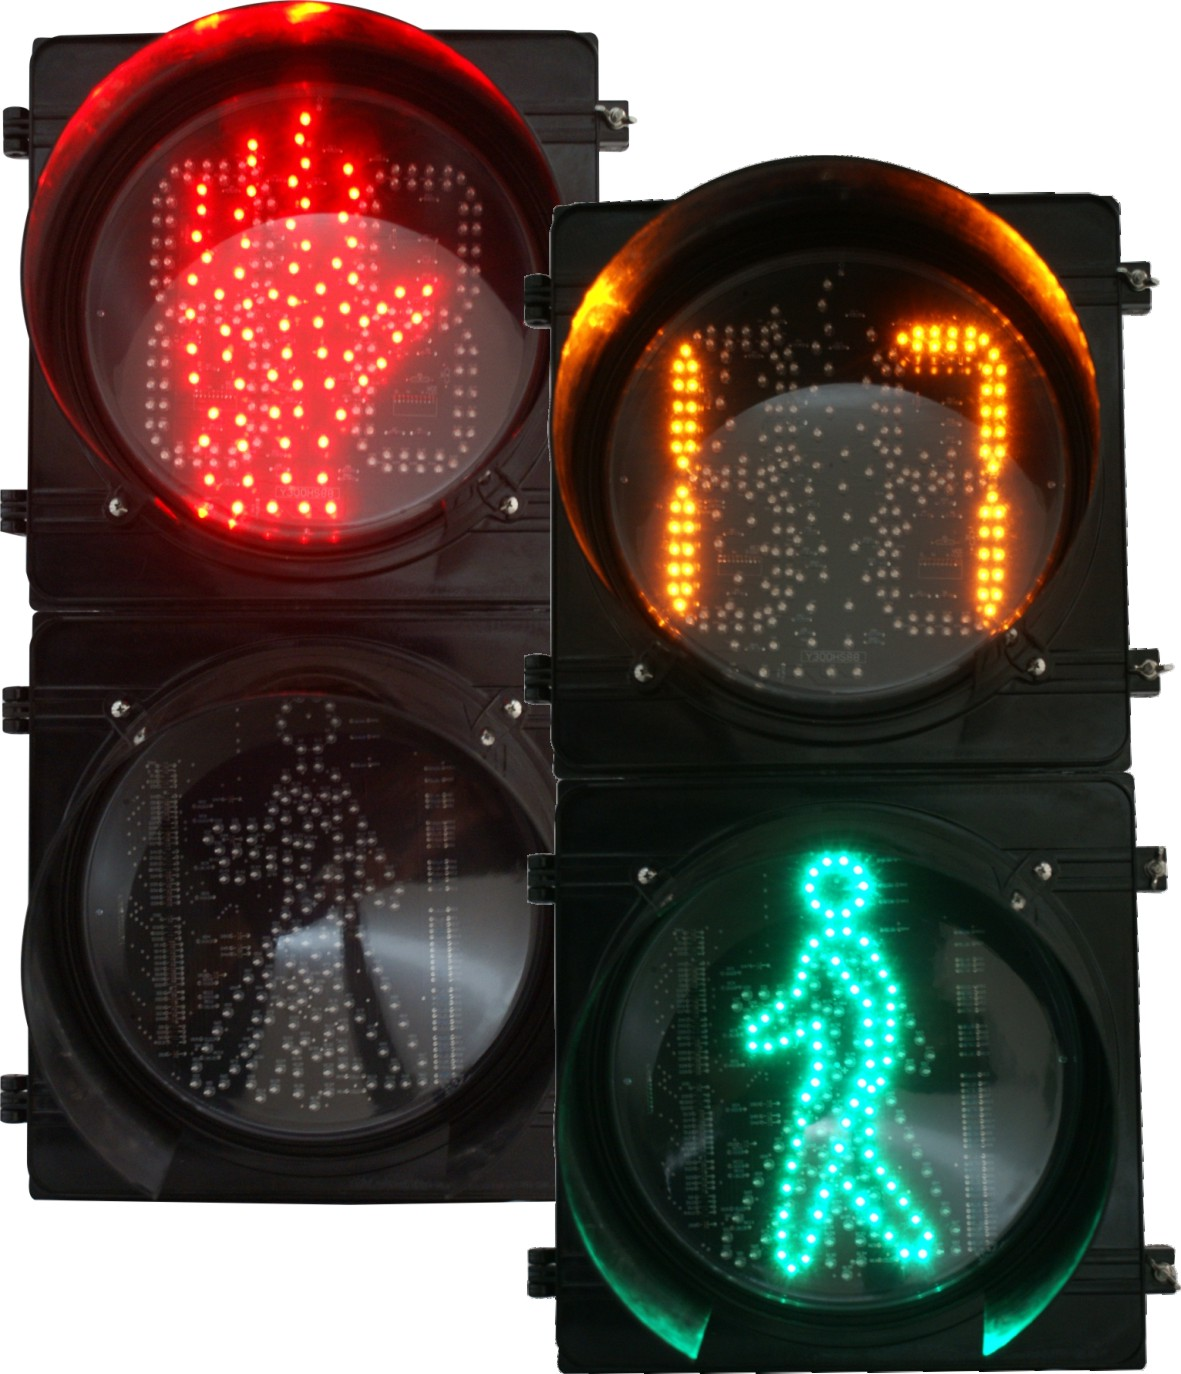 New Technology Could Display Traffic Signs Inside Vehicles